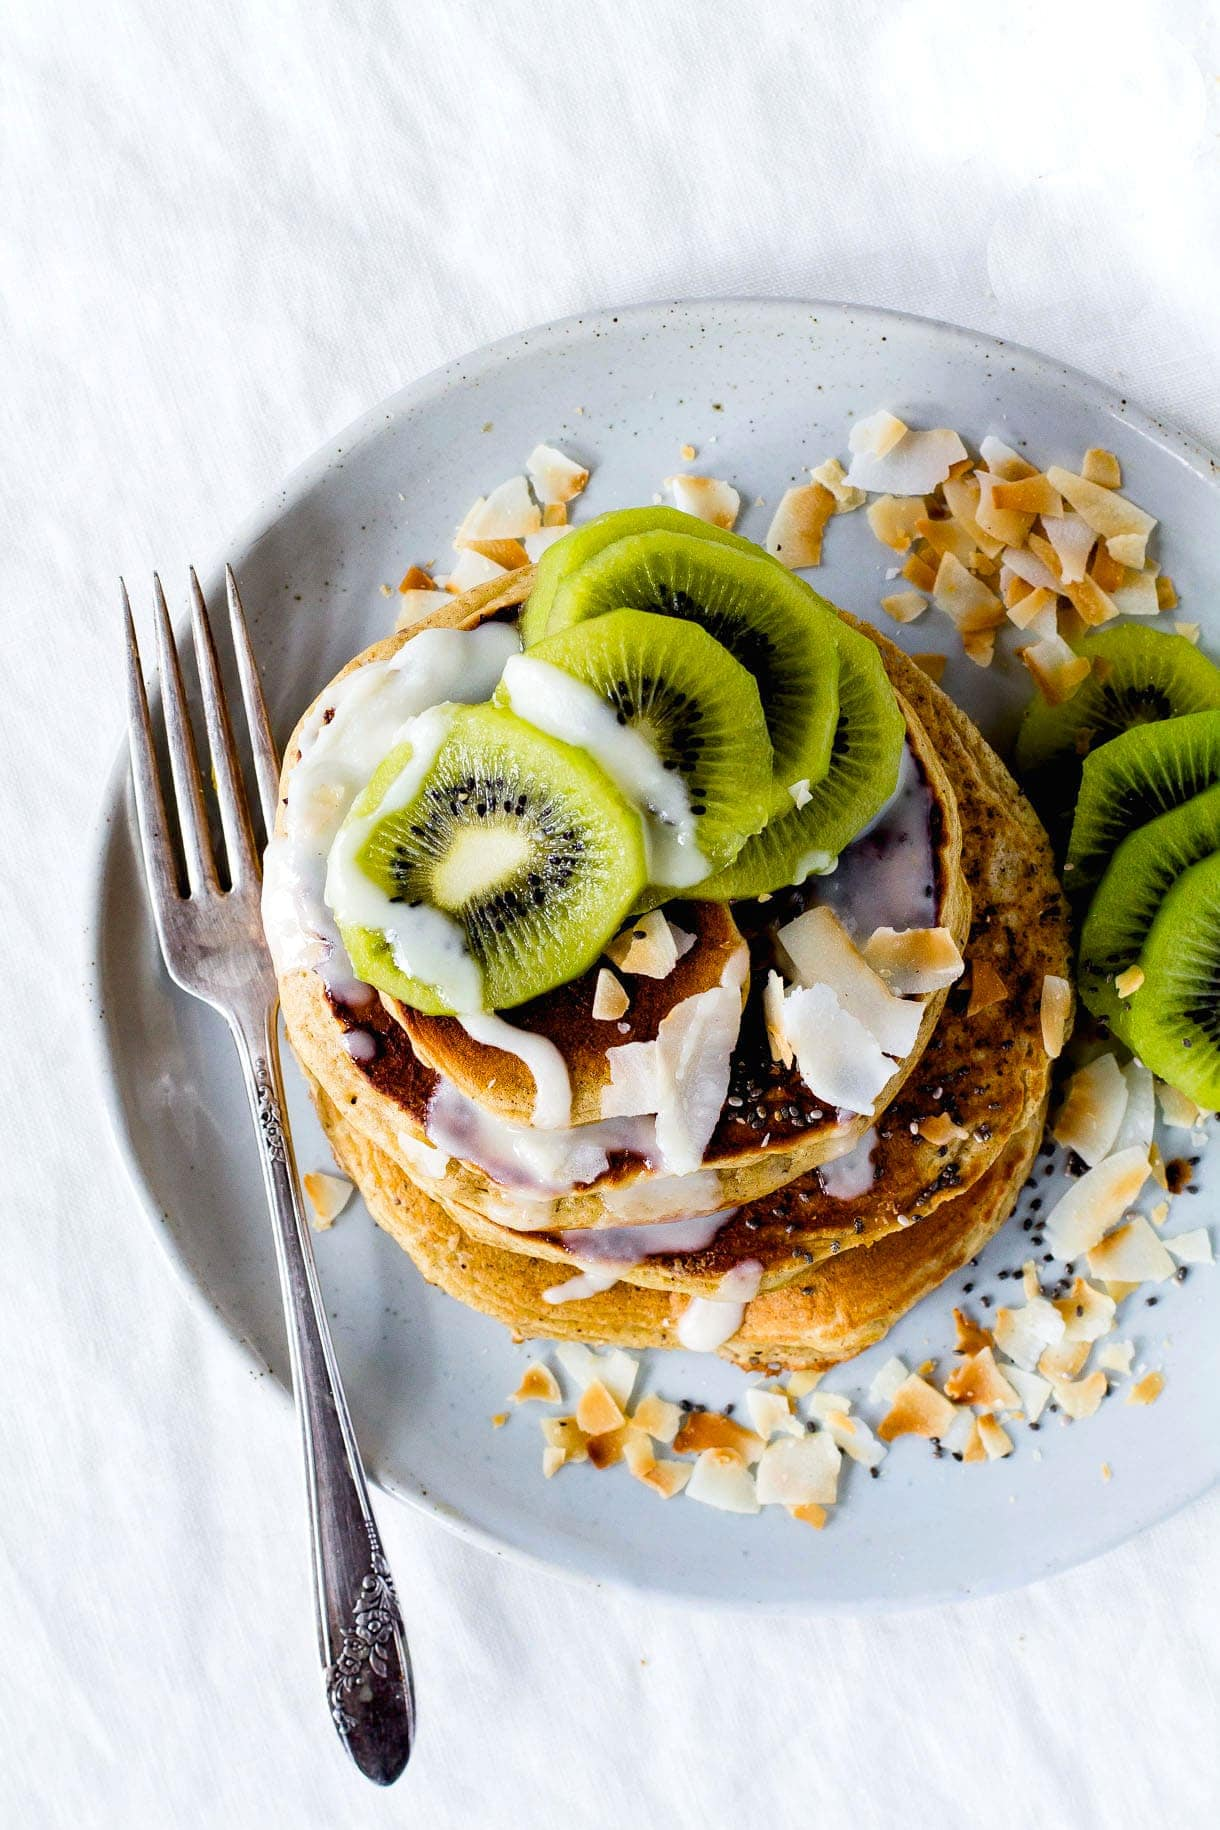 Fluffy Gluten-Free Pancakes with Coconut Butter & Kiwis (made in the blender)